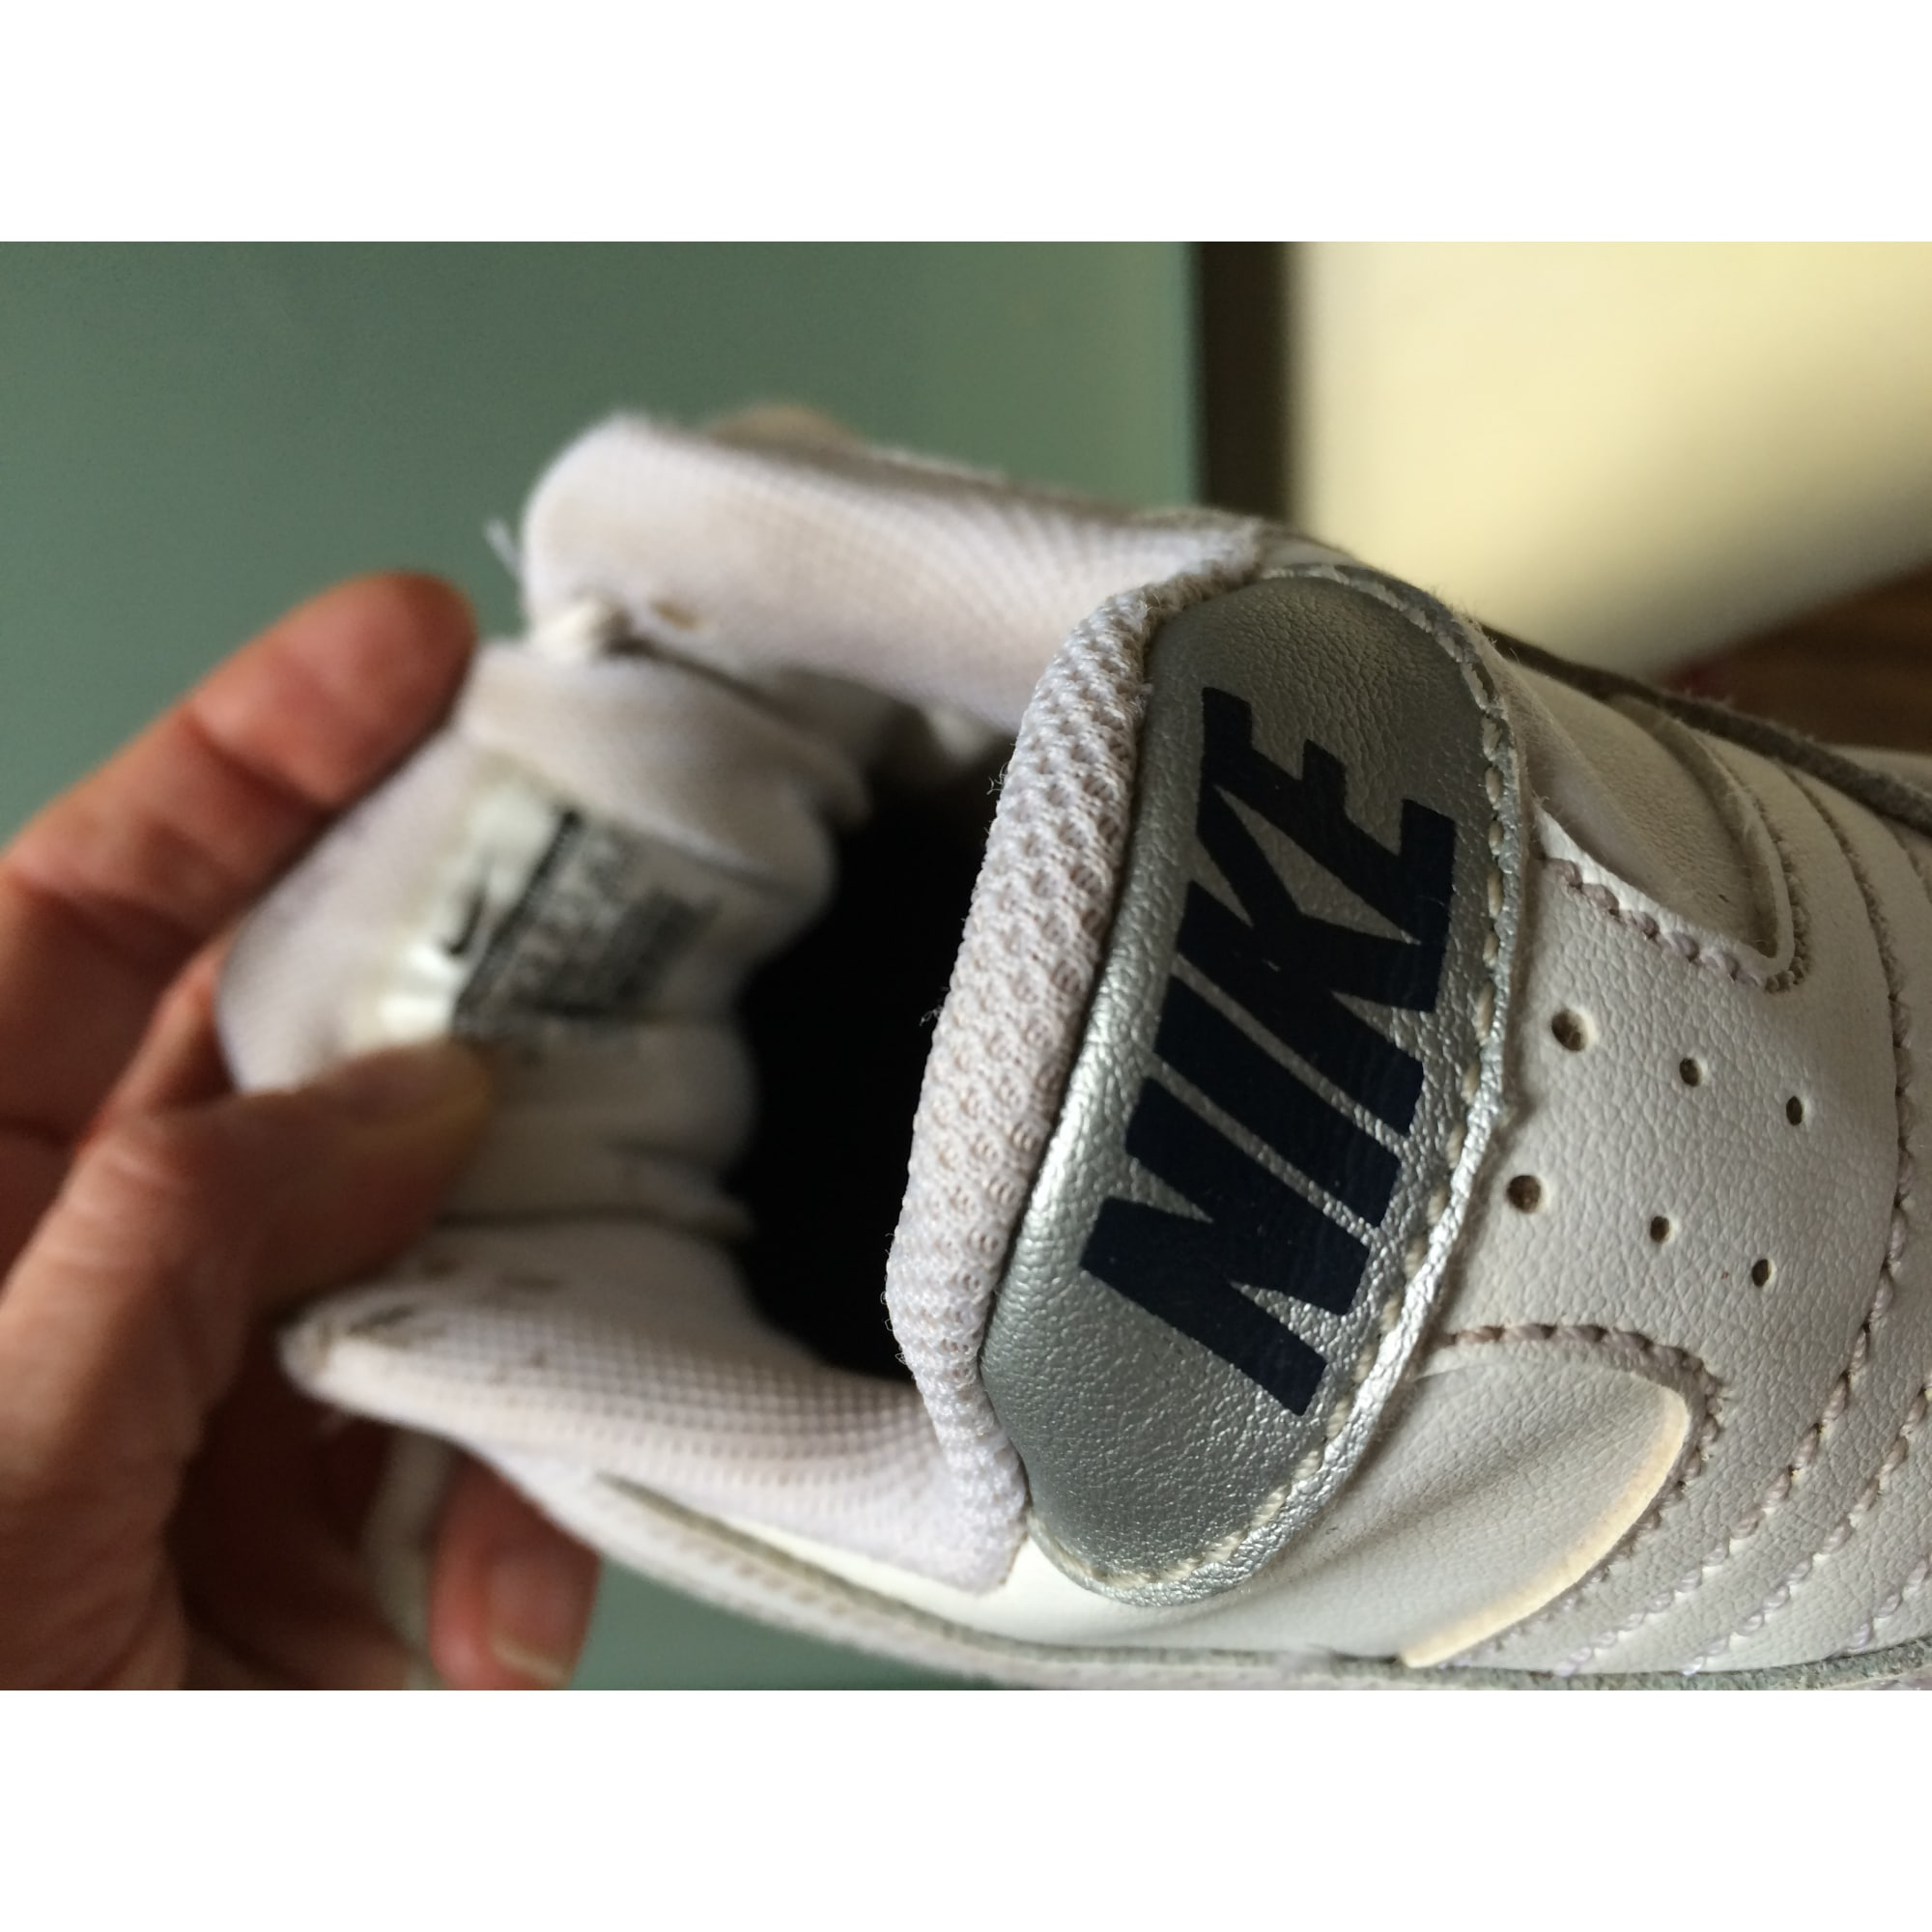 nike chaussure fille 37